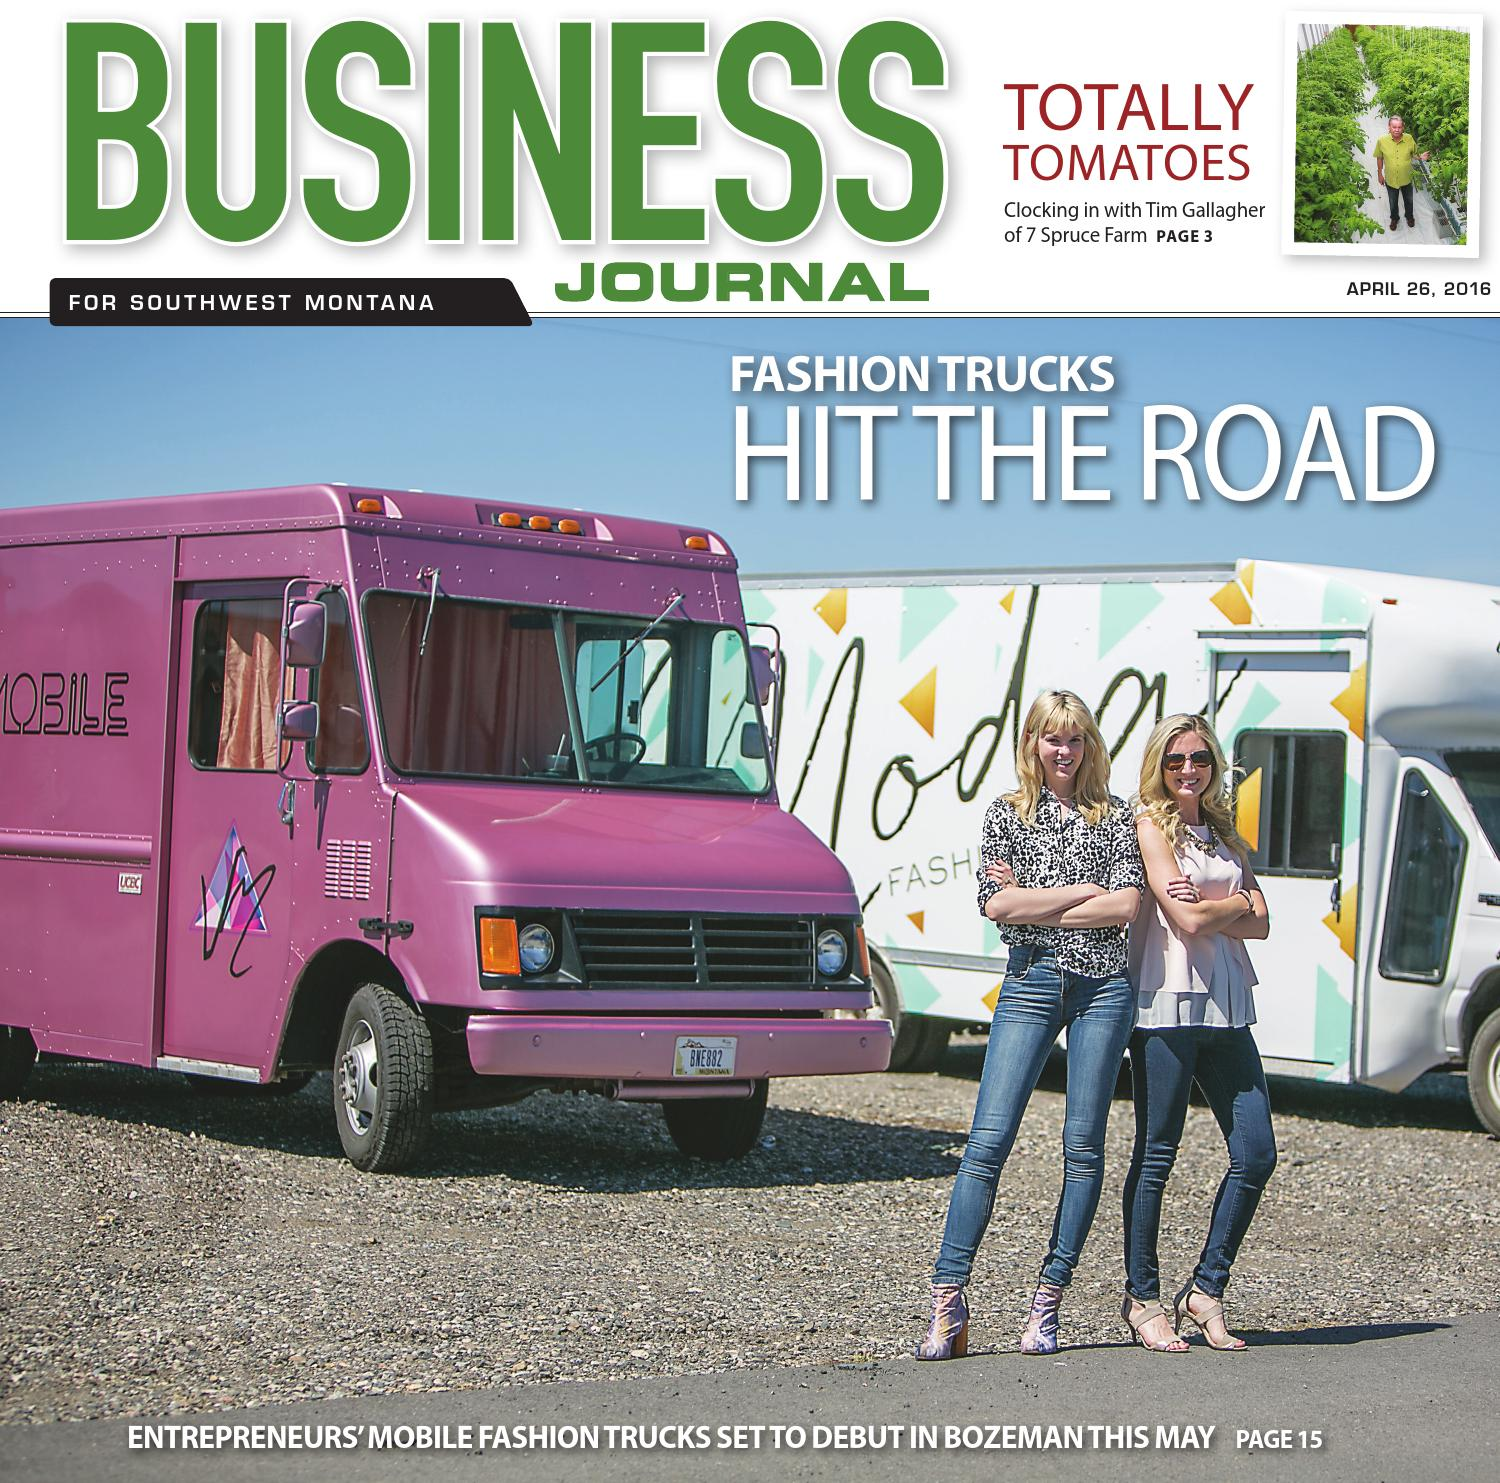 page_1 business journal april 2016 by bozeman daily chronicle issuu  at eliteediting.co